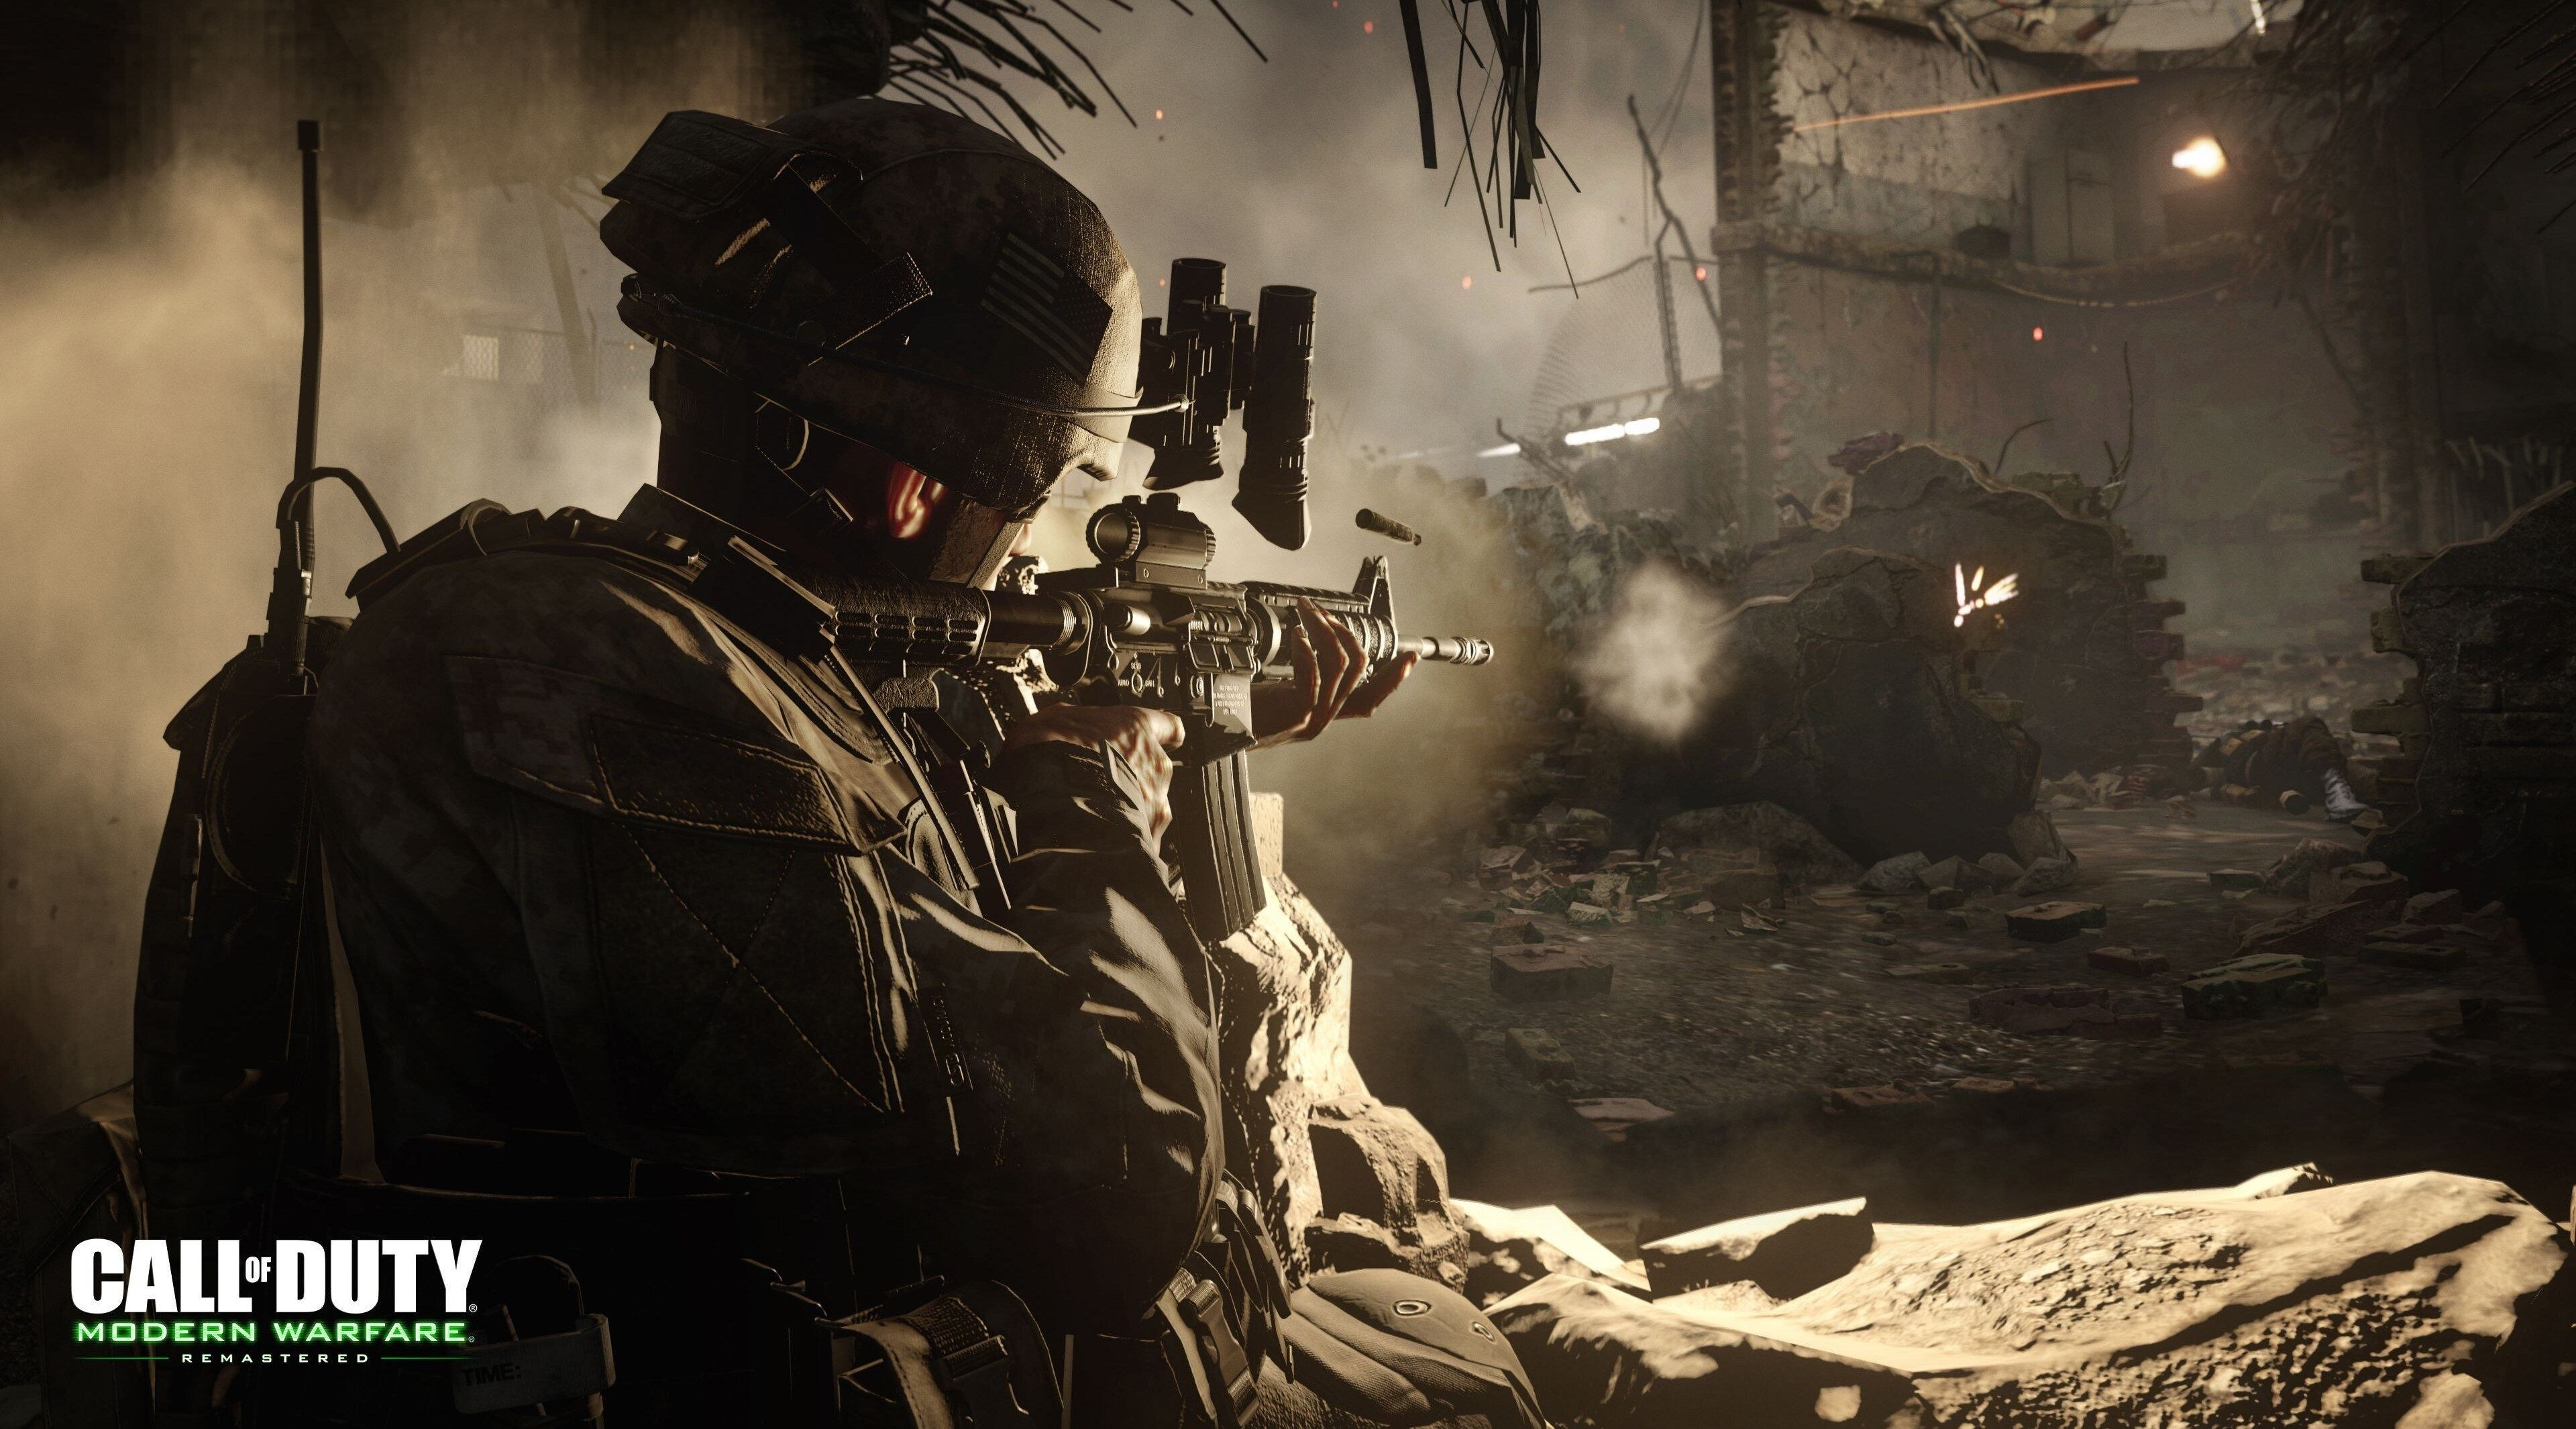 Unlimited Cod Call Of Duty Wallpapers 4k Full Hd Hd Download For Free Best Gaming Wallpapers Gaming Wallpapers Call Of Duty